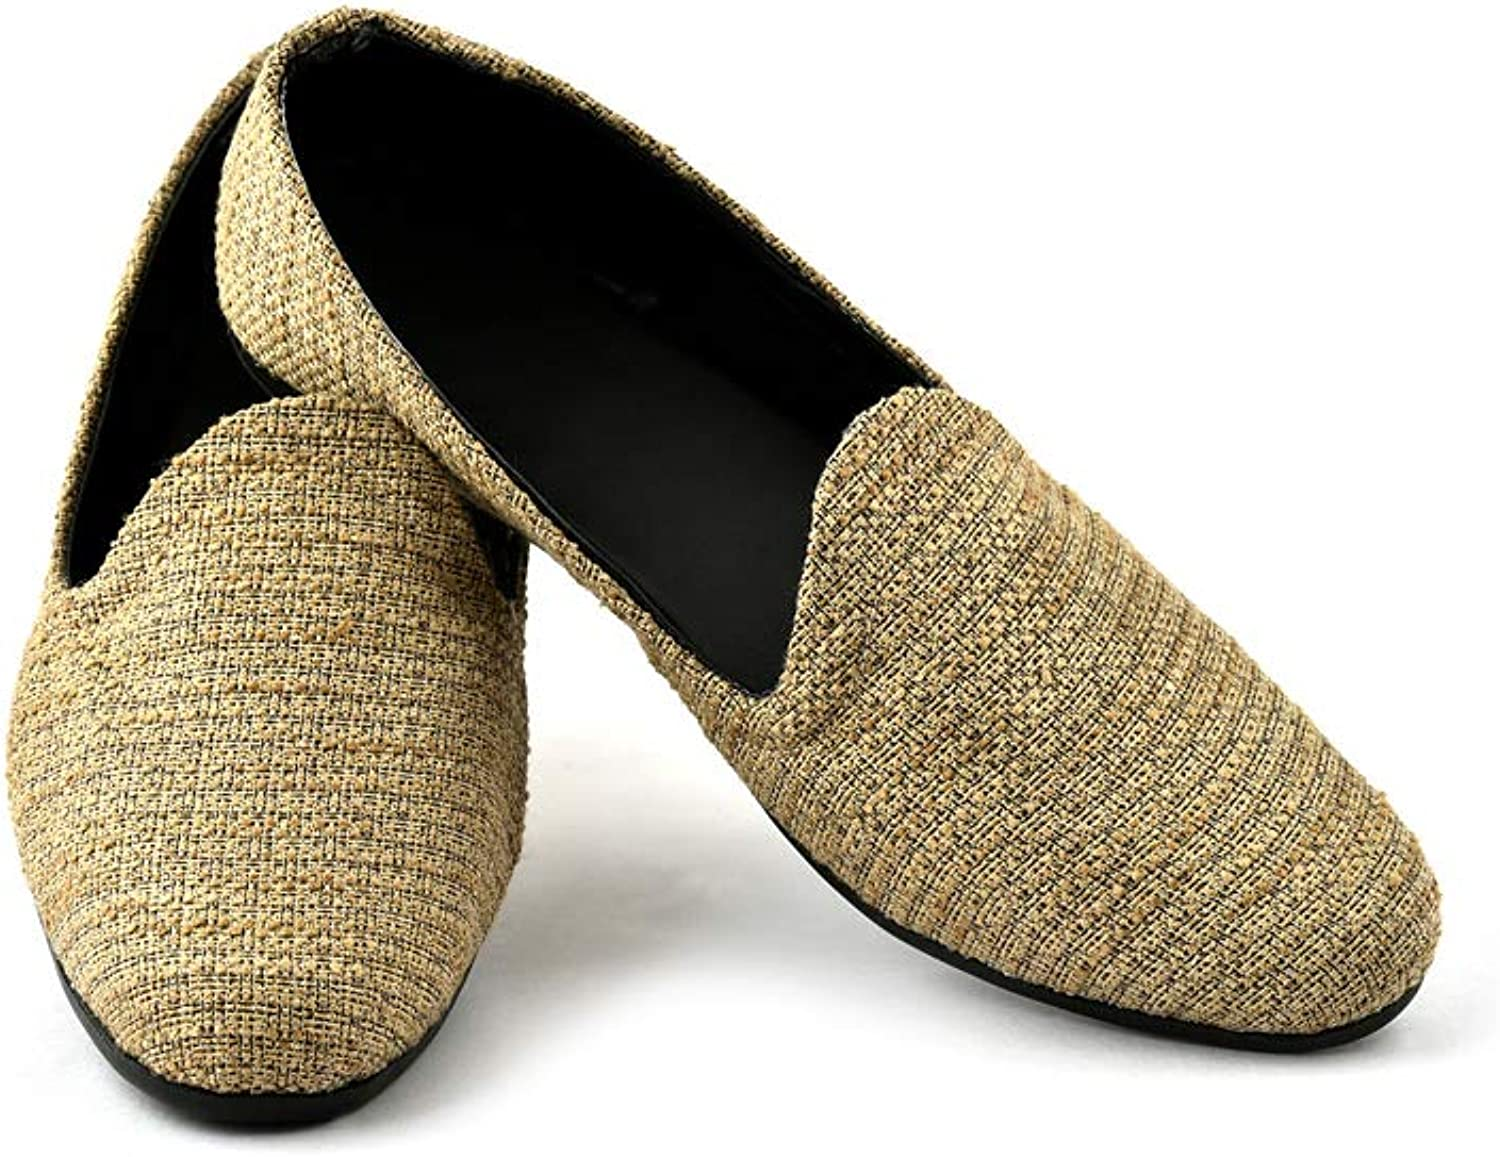 Lalhaveli Men's Modern Plaid Driving shoes Brown color Slip On Loafers